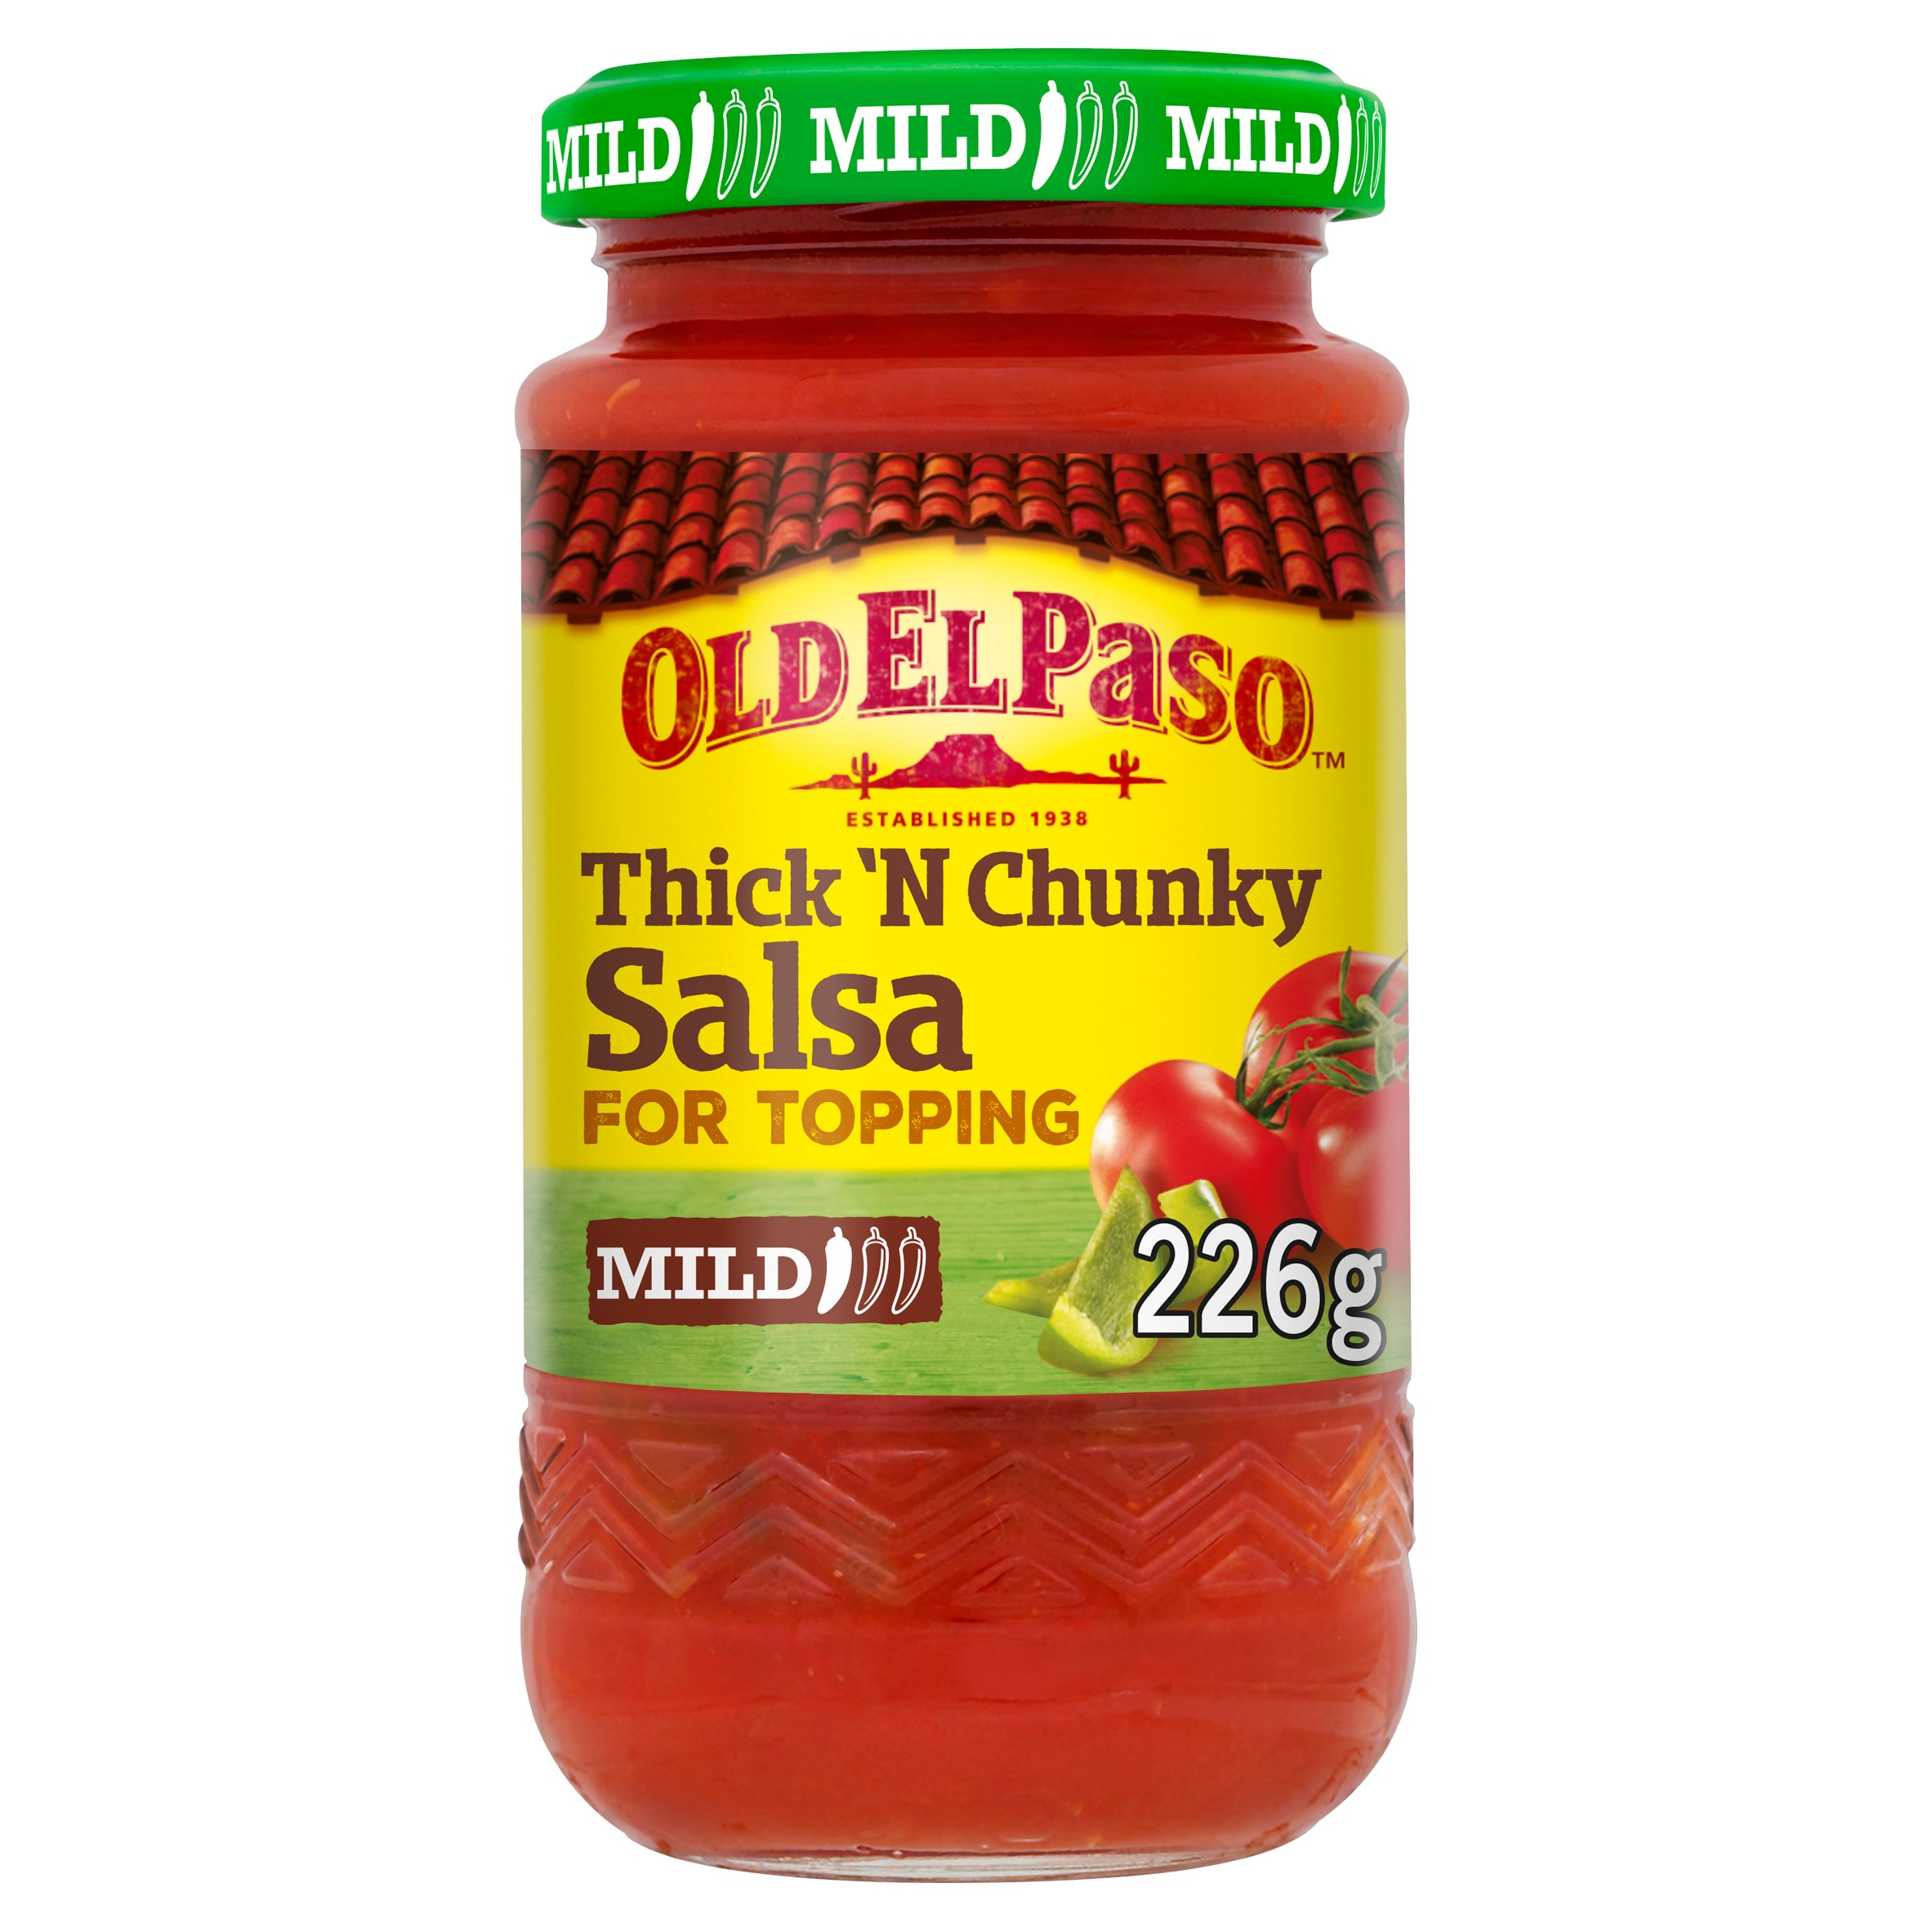 Old Elpaso Thick & Chunky Salsa Mild 226G